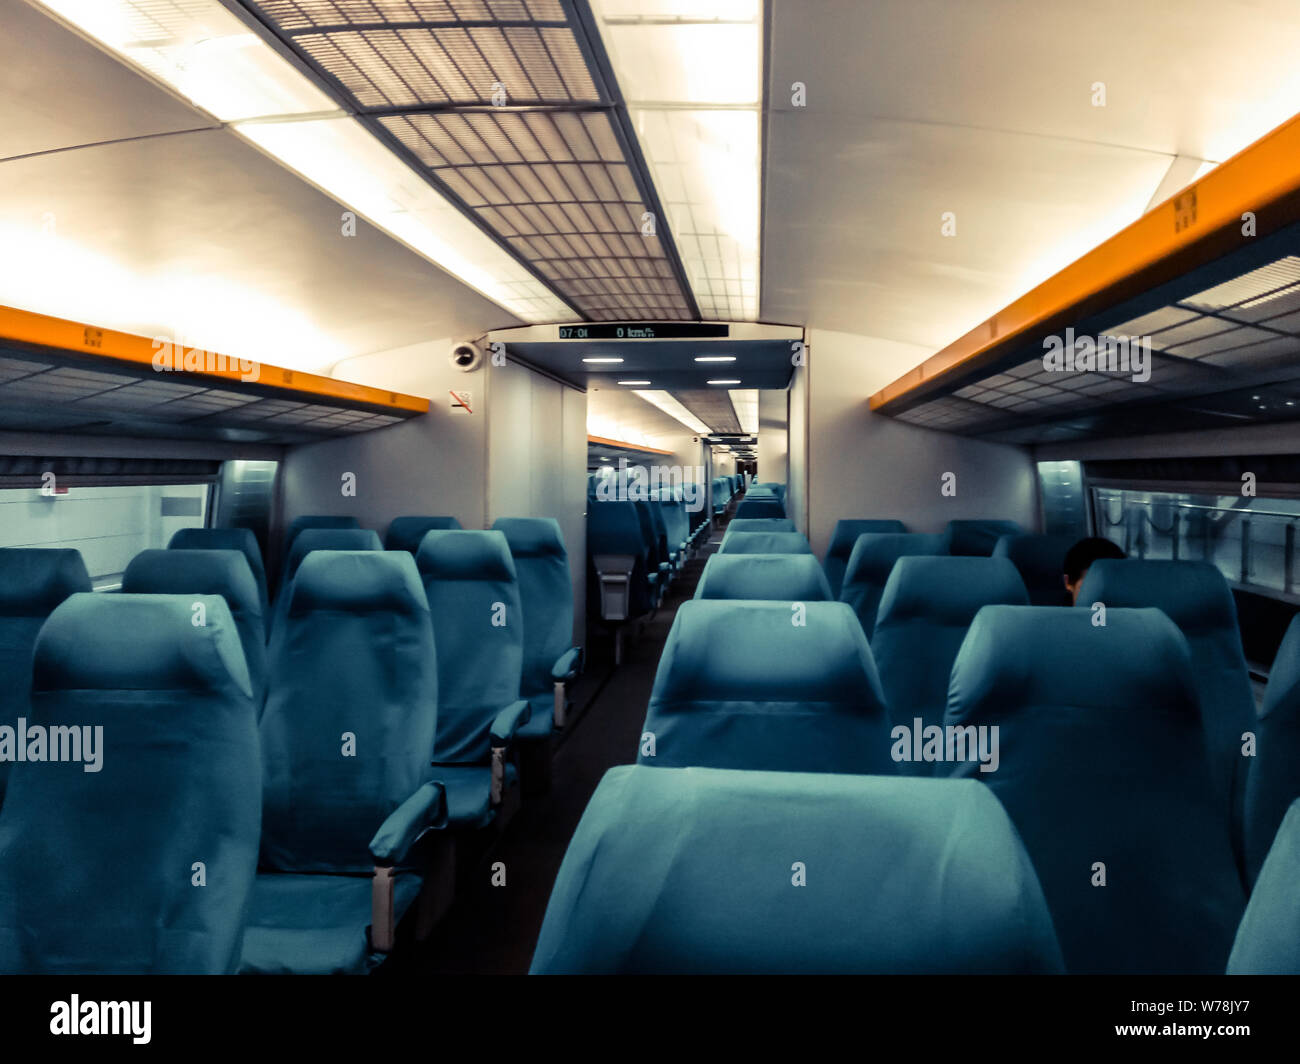 Image with the interior of a china border train. A modern train with comfortable and colorful chairs Stock Photo